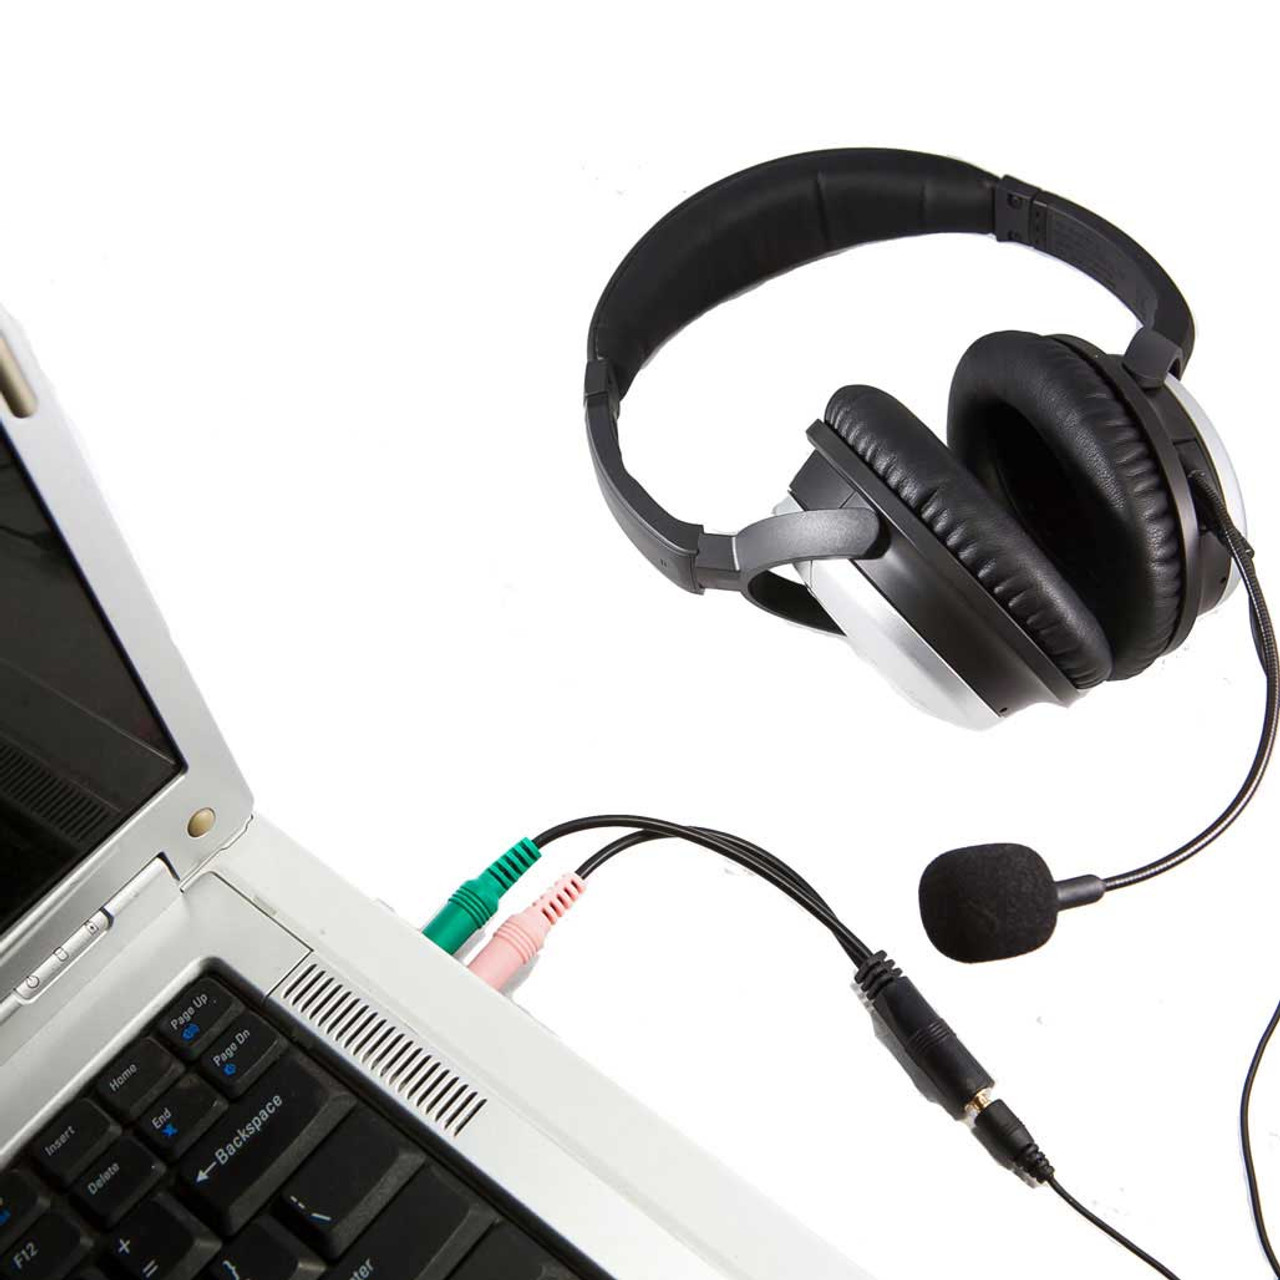 bose headset. pc adapter with noise canceling microphone for bose qc headphones headset